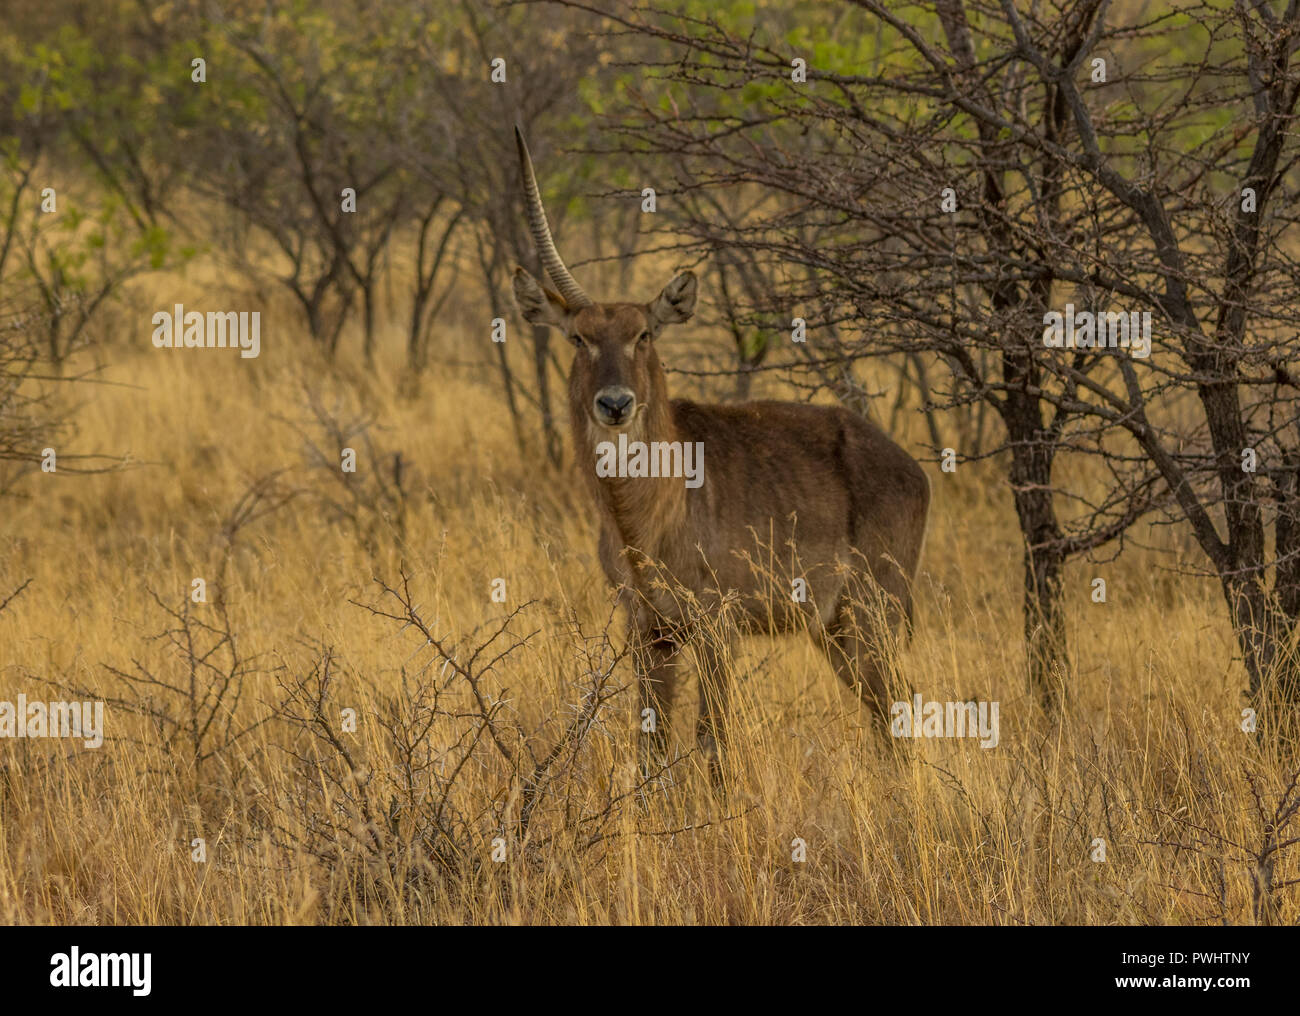 A buck with one horn,stands under a tree in the African wilderness image with copy space in landscape format - Stock Image